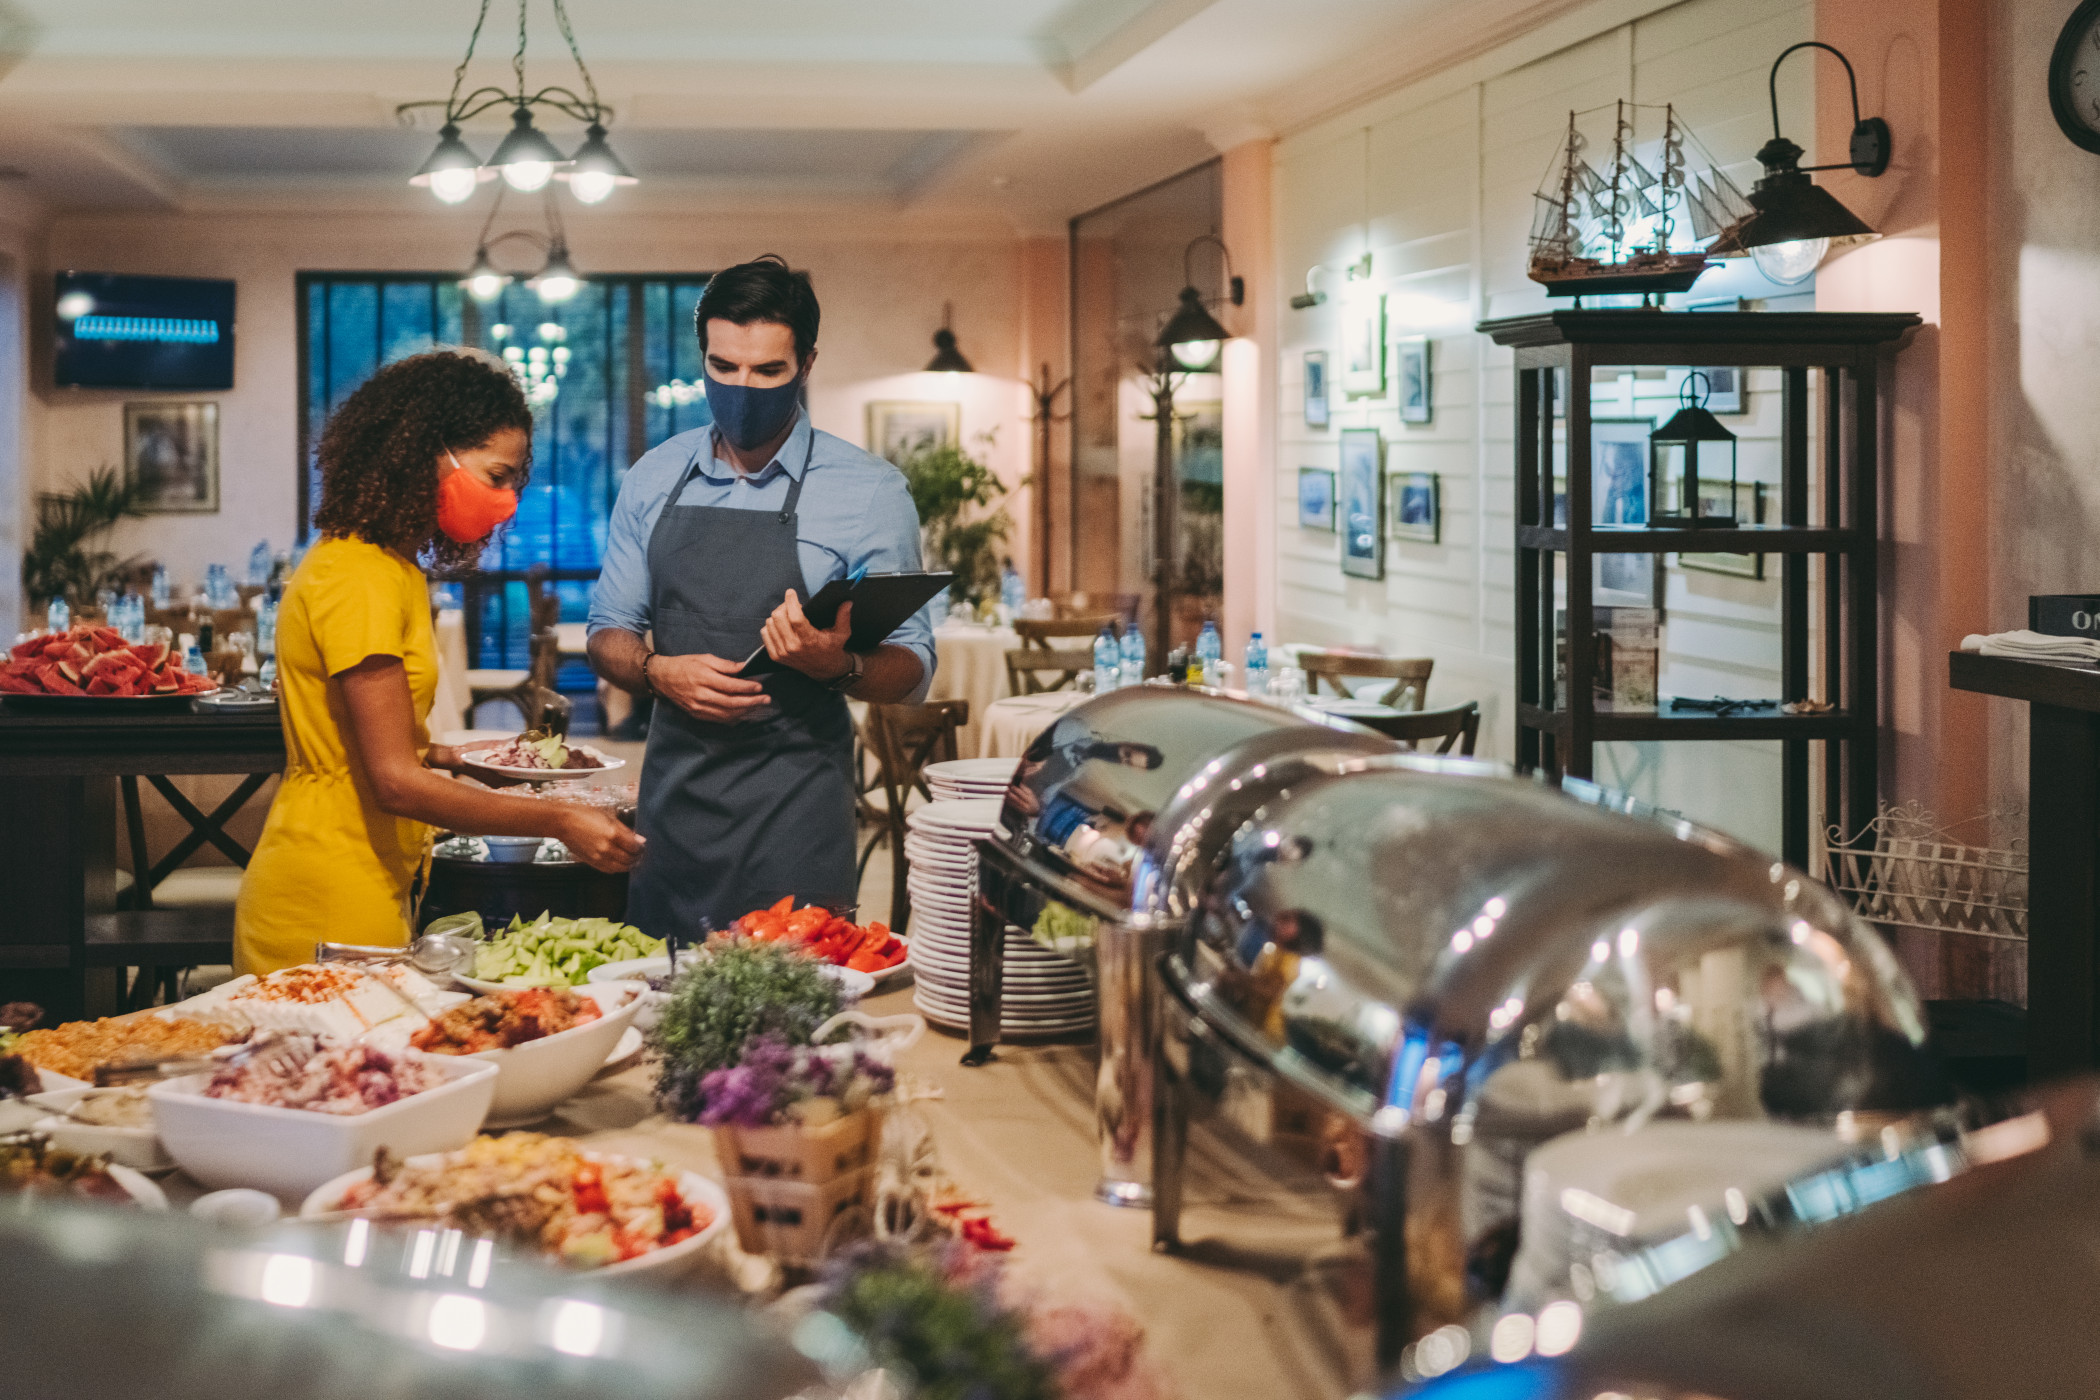 Questions arise whether hotels with restaurants should have been eligible for money from the Restaurant Relief Fund. (Getty Images)